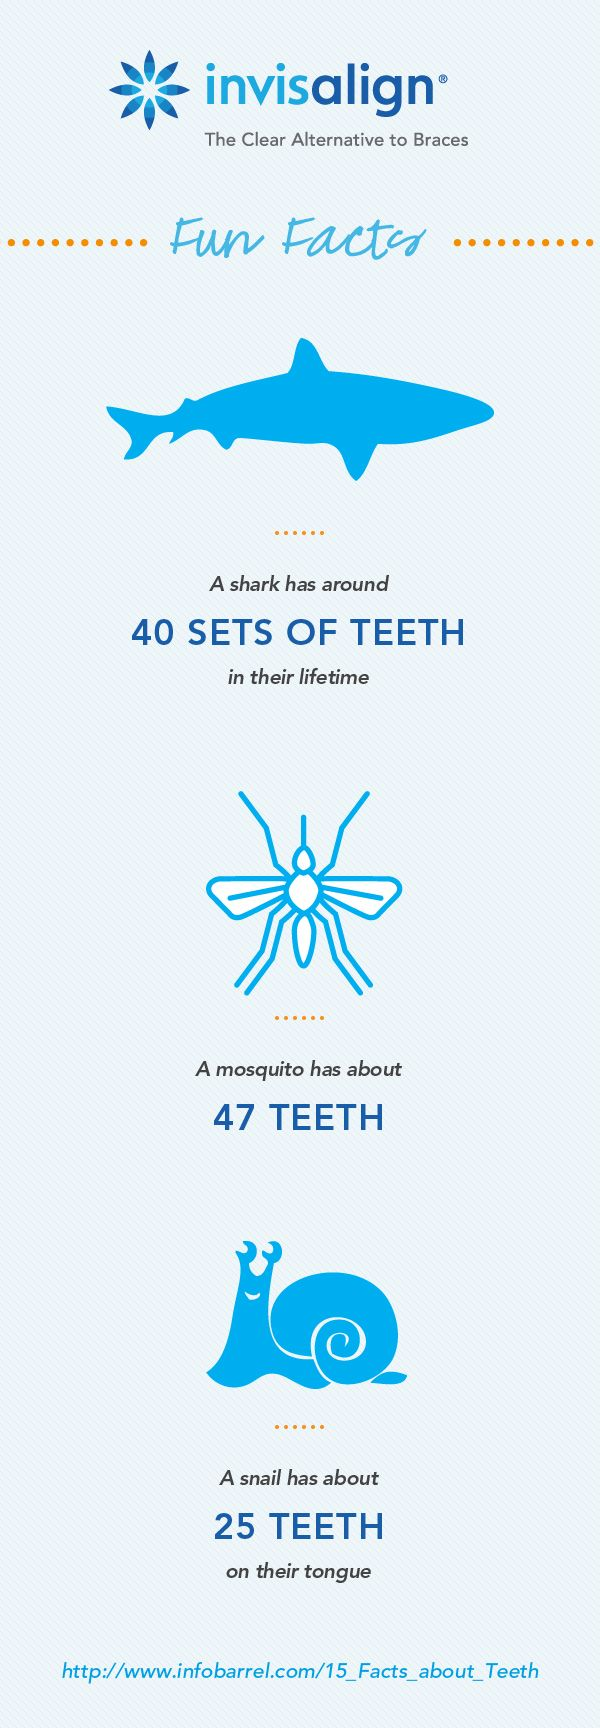 We didn't even know mosquitos and snails had teeth! Wonder if they need a dentist? http://www.myazsmile.com/